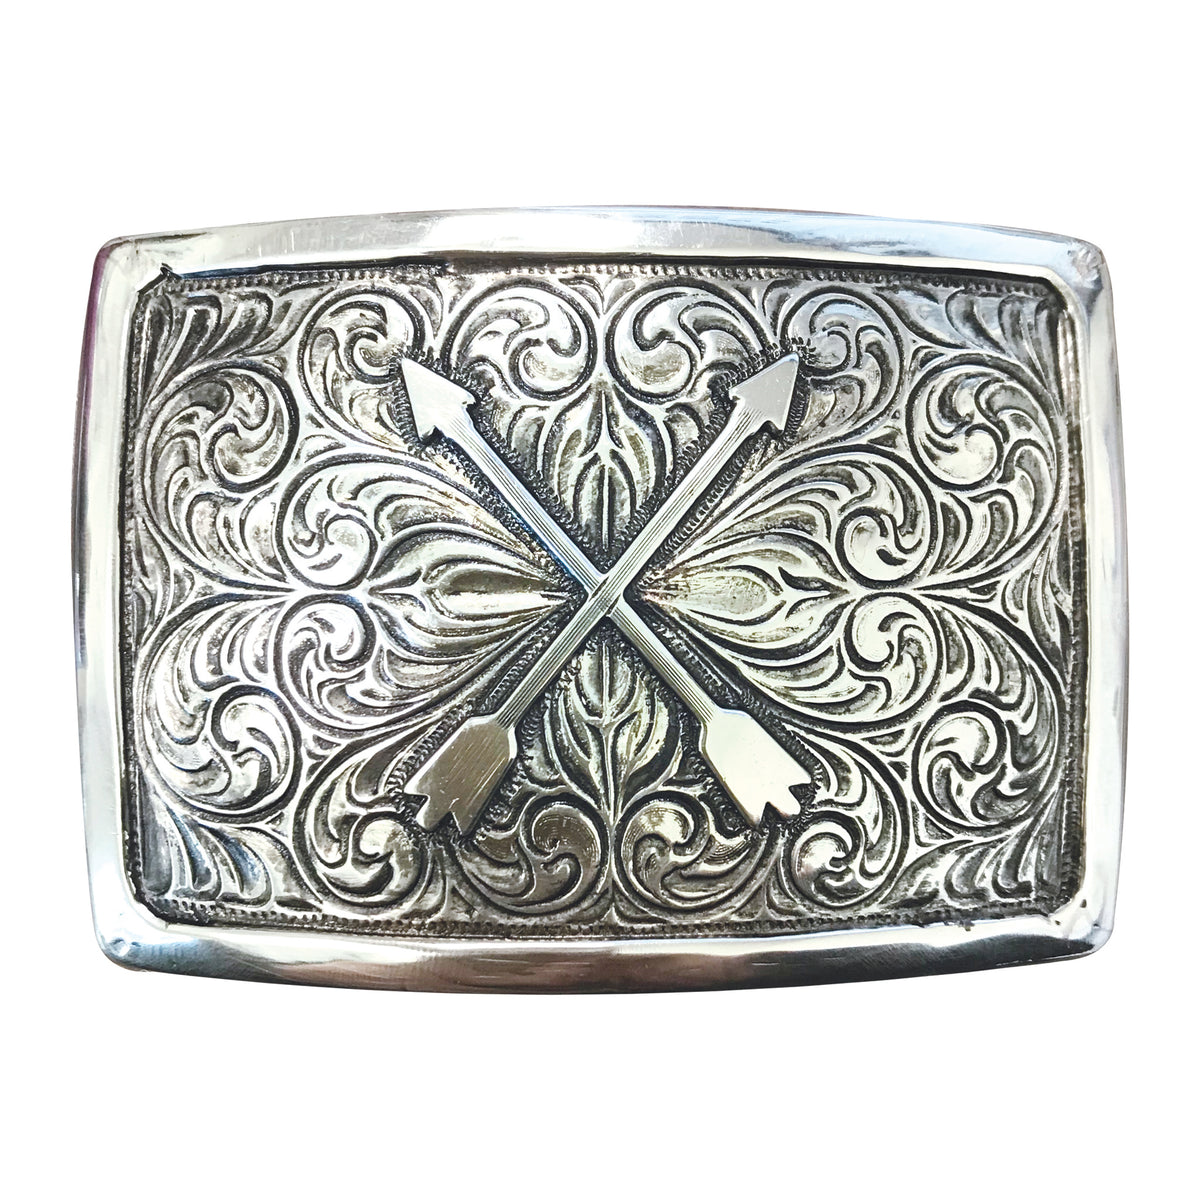 Crossed Arrows Iconic Classic Buckle